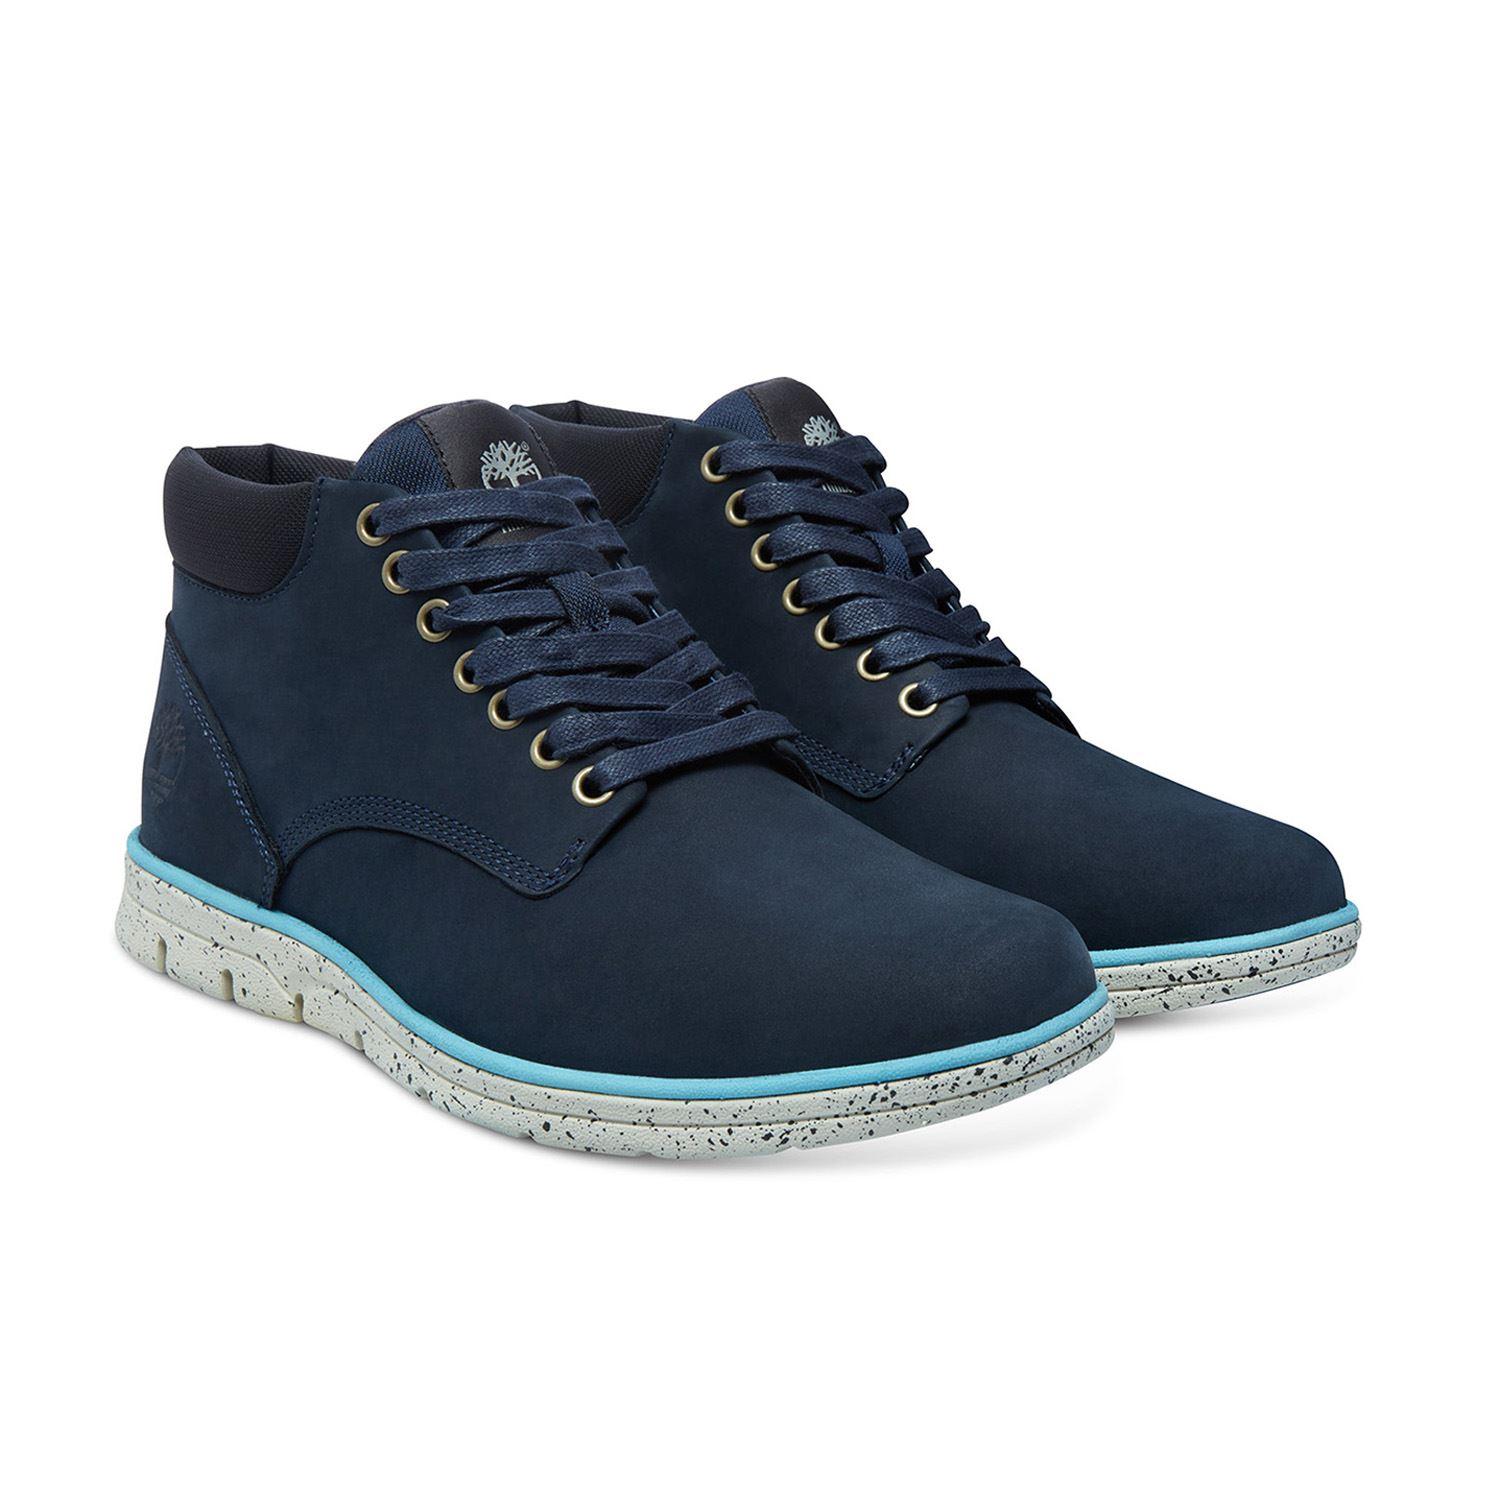 Navy Chukka Boots Sale: Save Up to 50% Off! Shop roeprocjfc.ga's huge selection of Navy Chukka Boots - Over 30 styles available. FREE Shipping & Exchanges, and a % price guarantee!